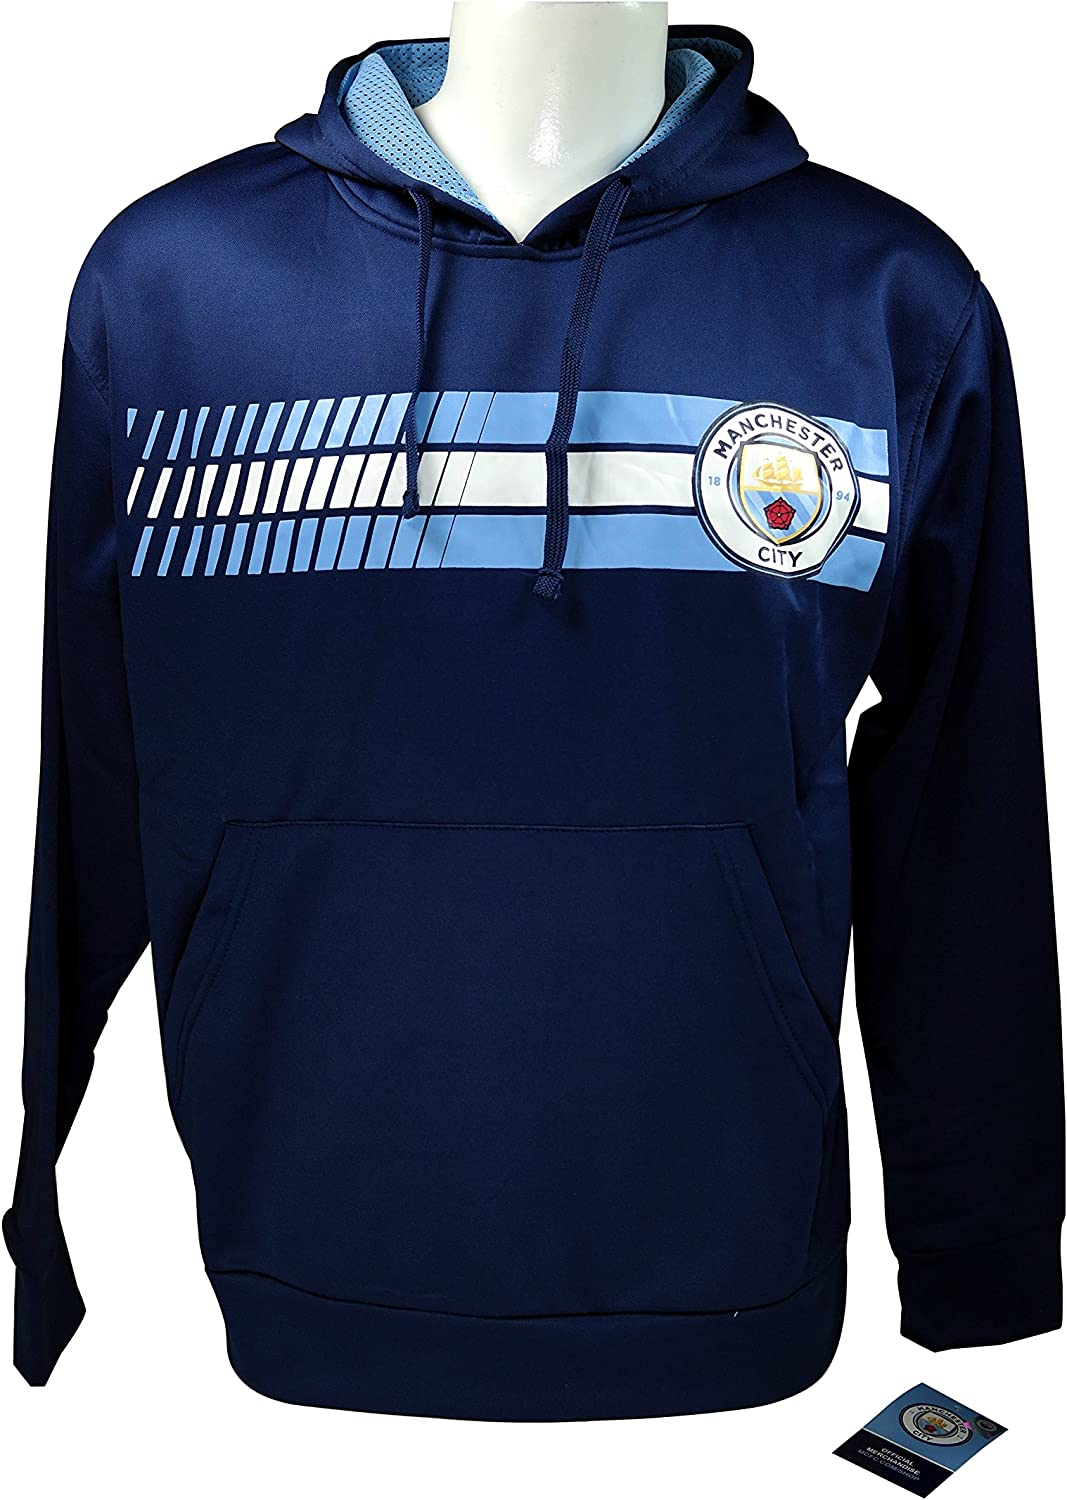 Icon Sports Men Manchester City Jacket Sweatshirt Officially Licensed Soccer Hoodie 017